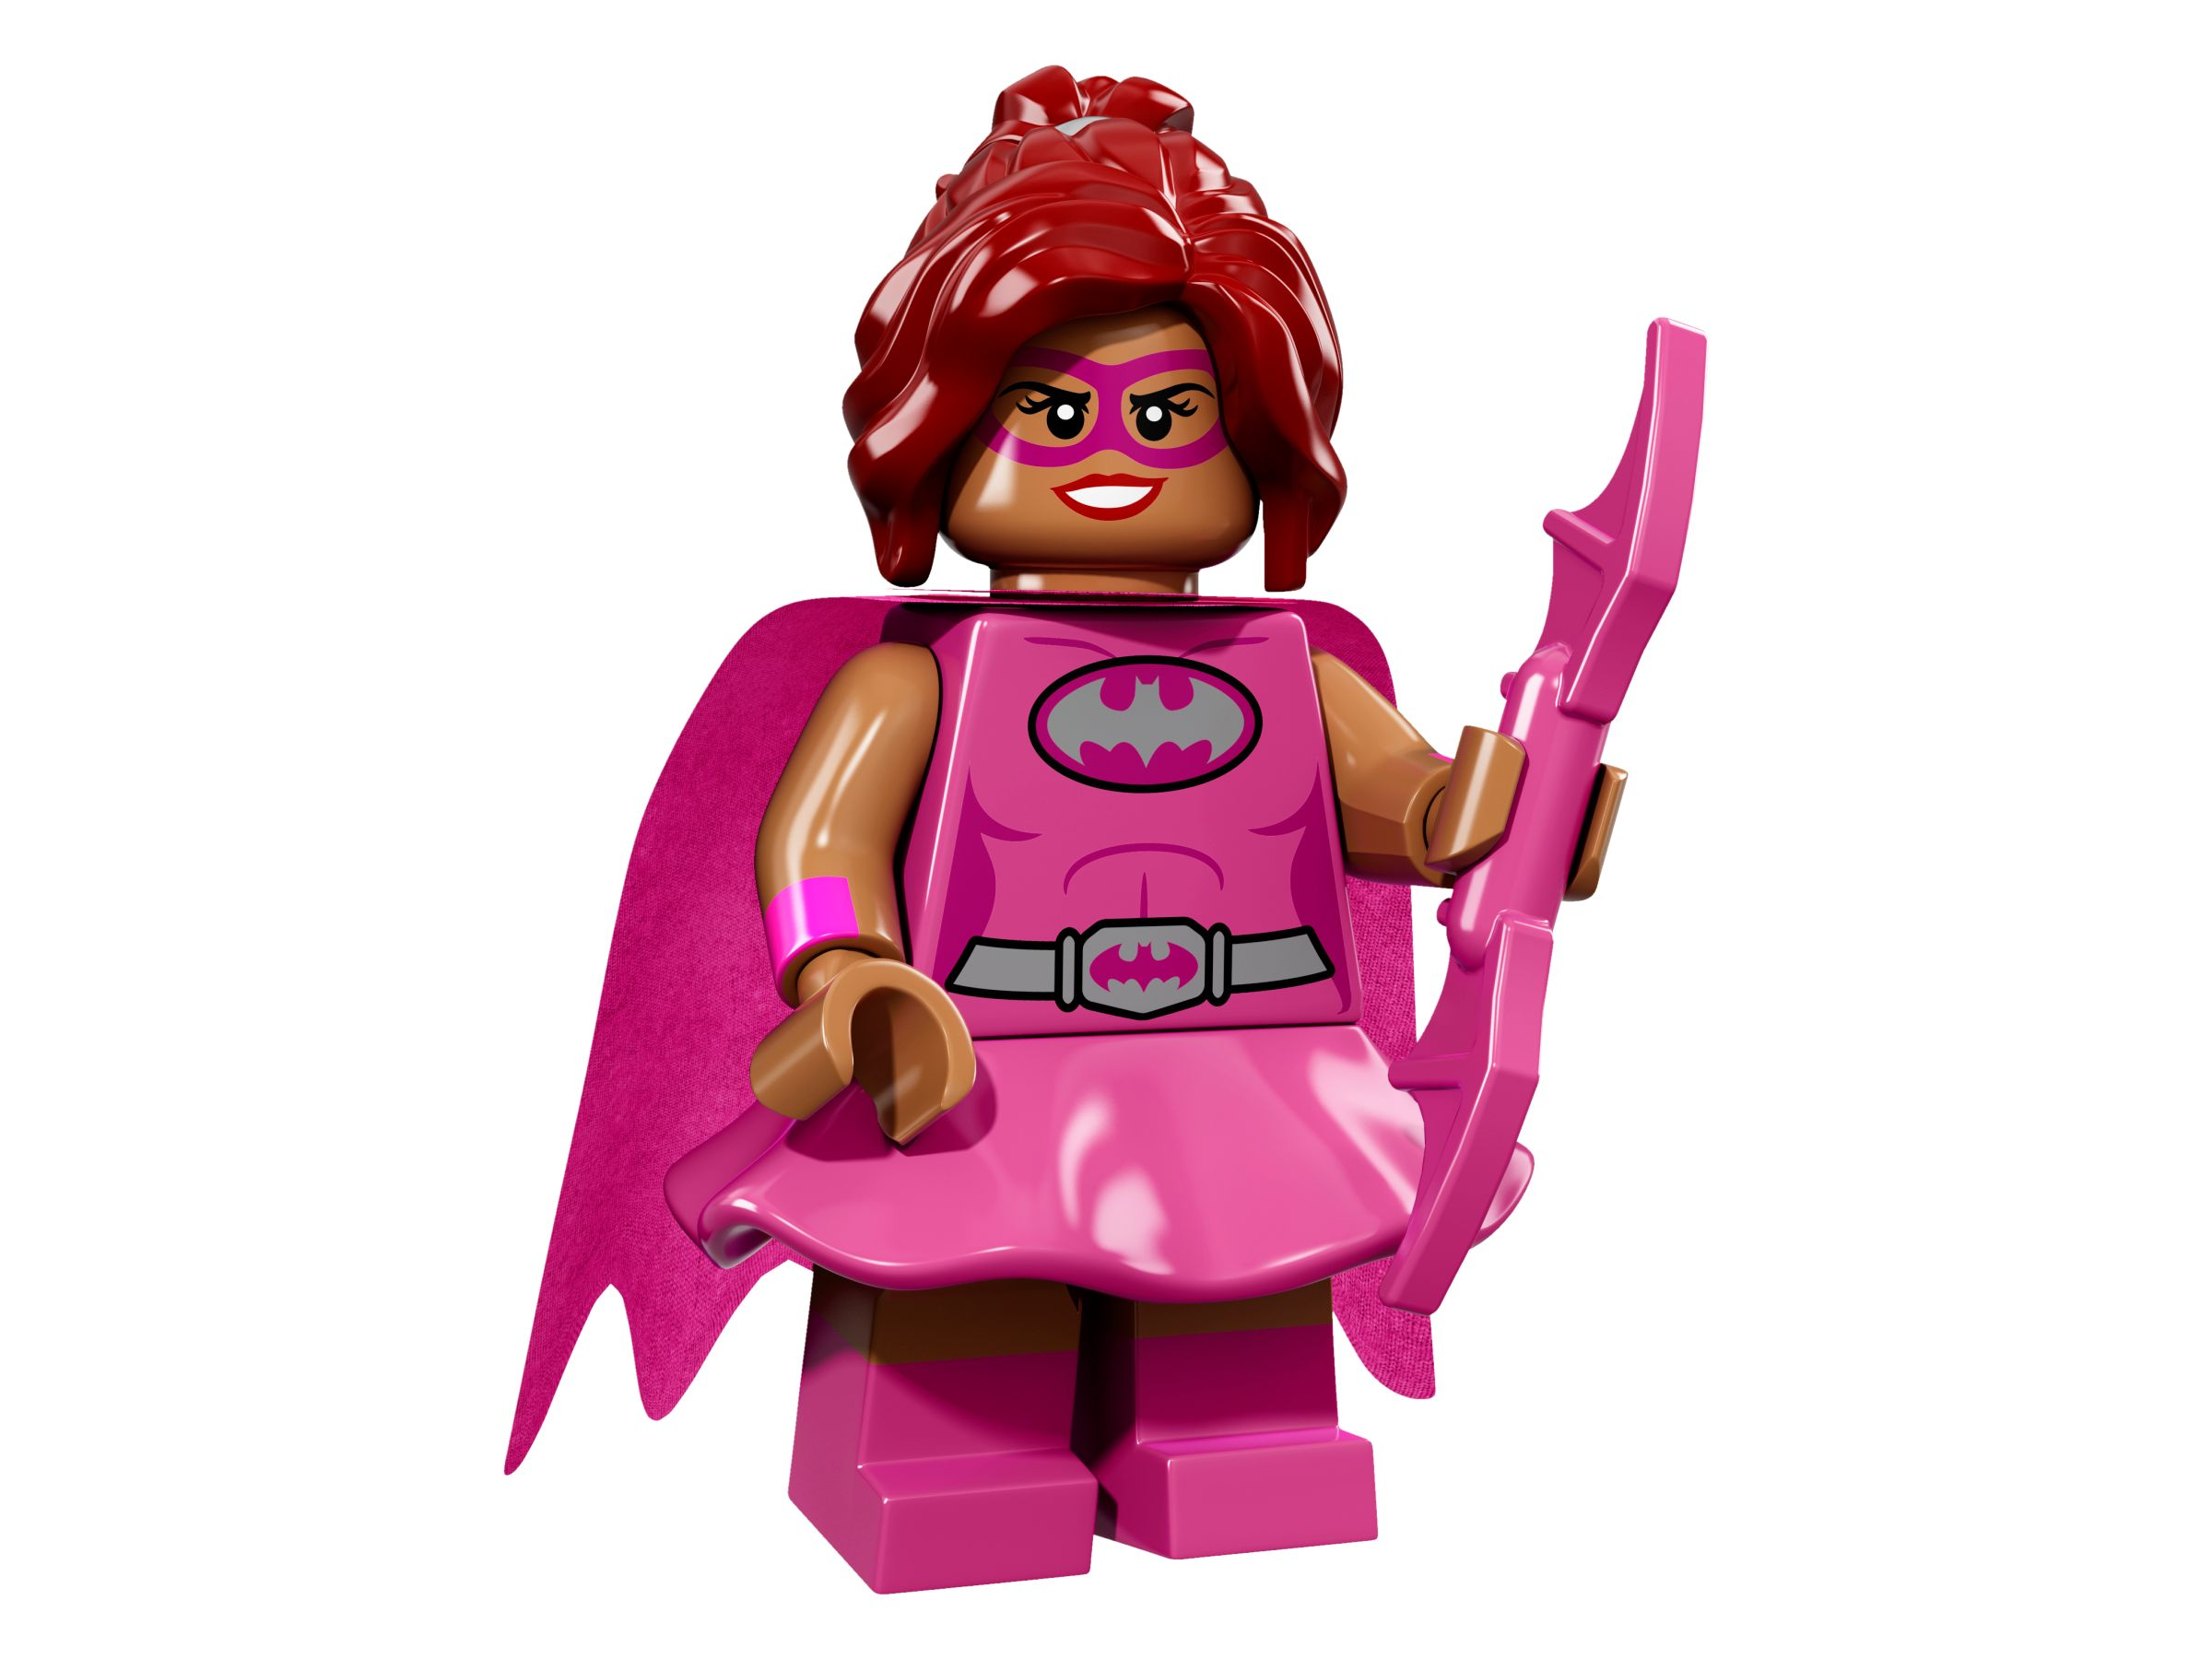 LEGO Collectable Minifigures 71017 LEGO® Batman Movie Minifiguren Serie LEGO_71017_alt13.jpg